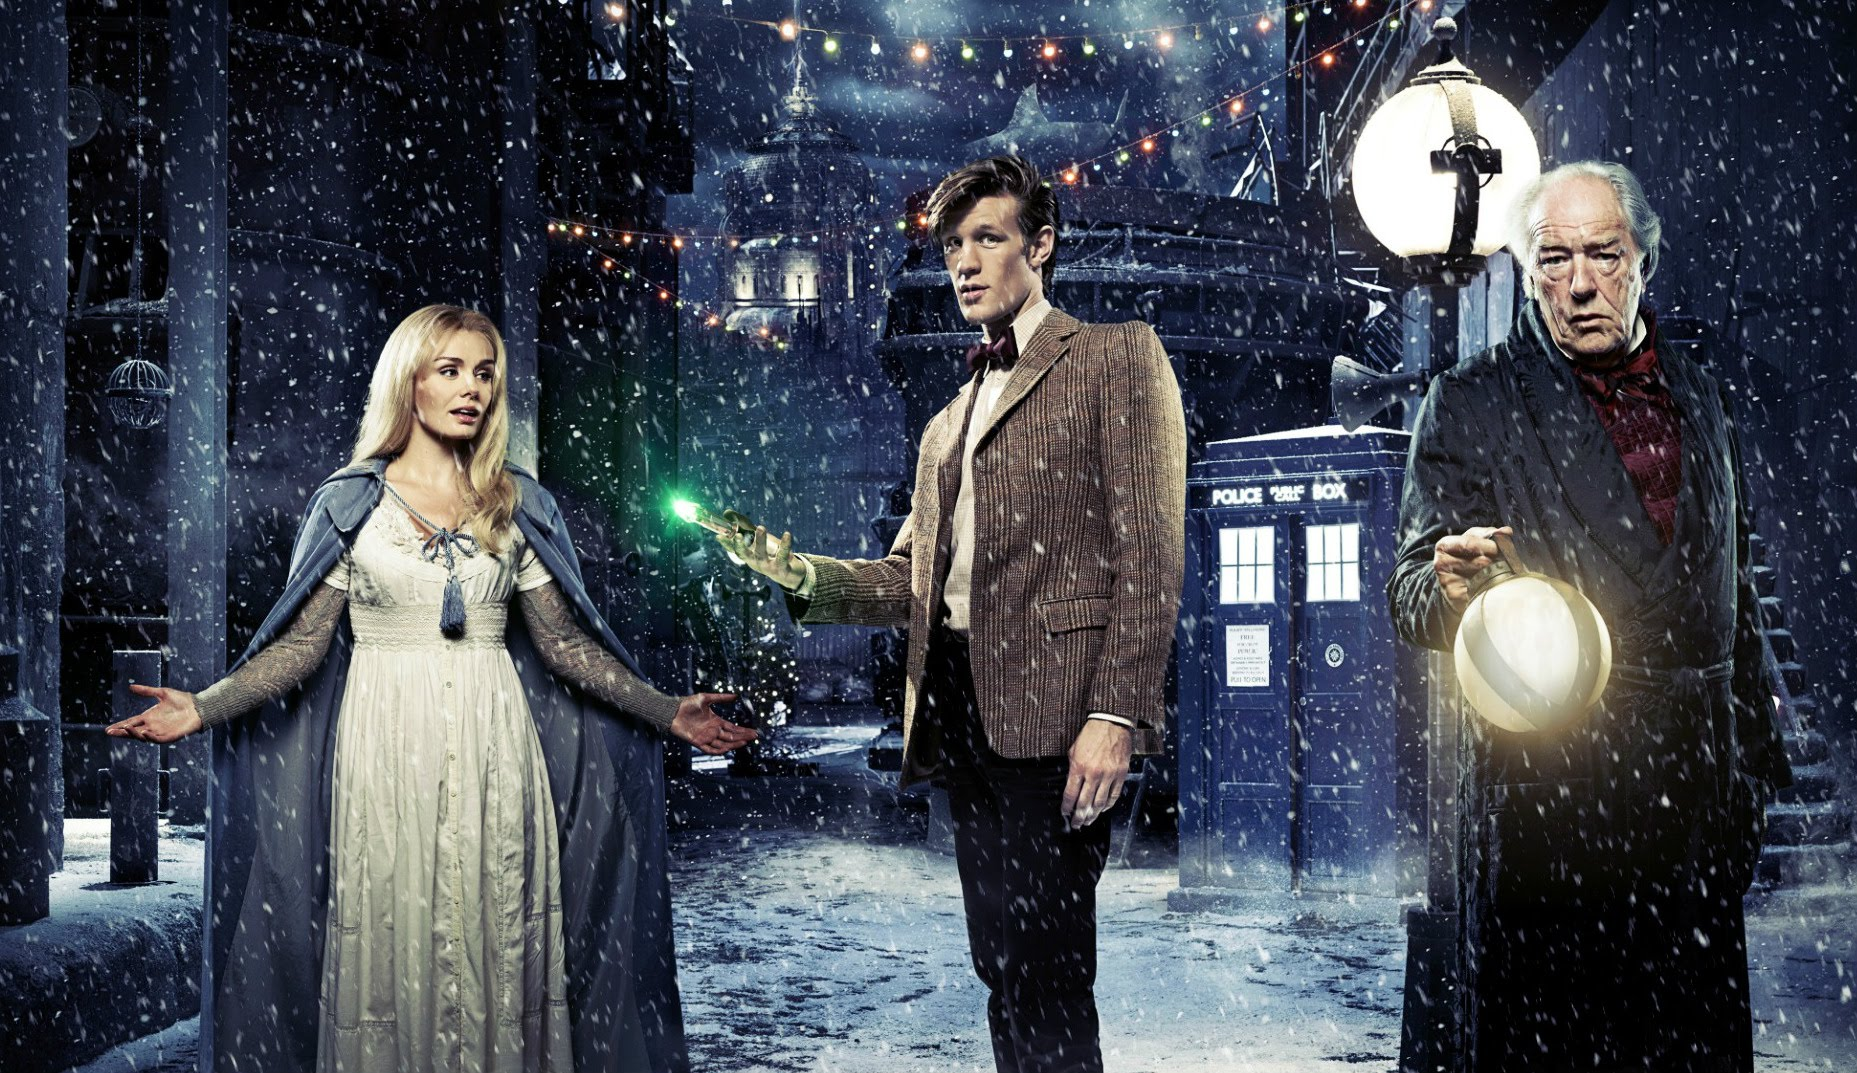 Doctor Who Christmas Specials.Doctor Who Christmas Special Ranking Every Single